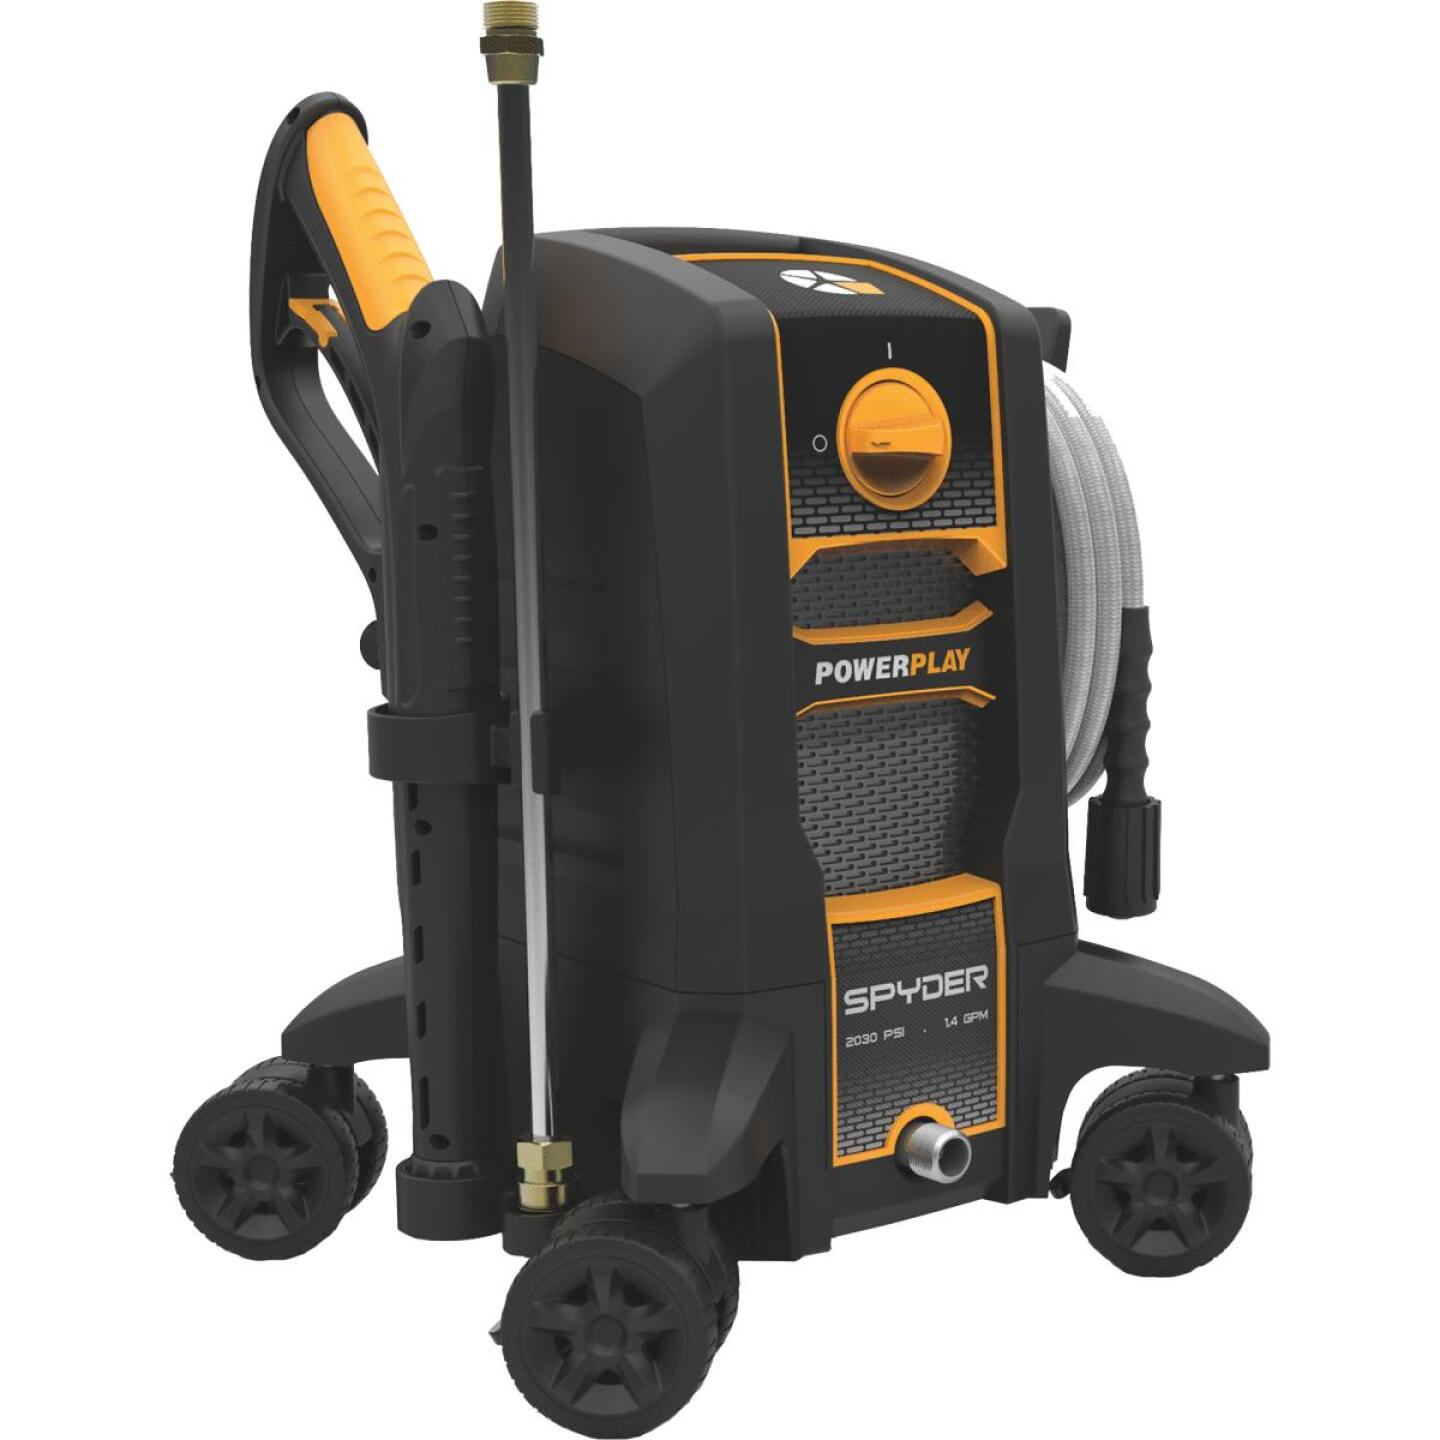 Powerplay Spyder 2030 psi 1.4 GPM Cold Water Electric Pressure Washer Image 1